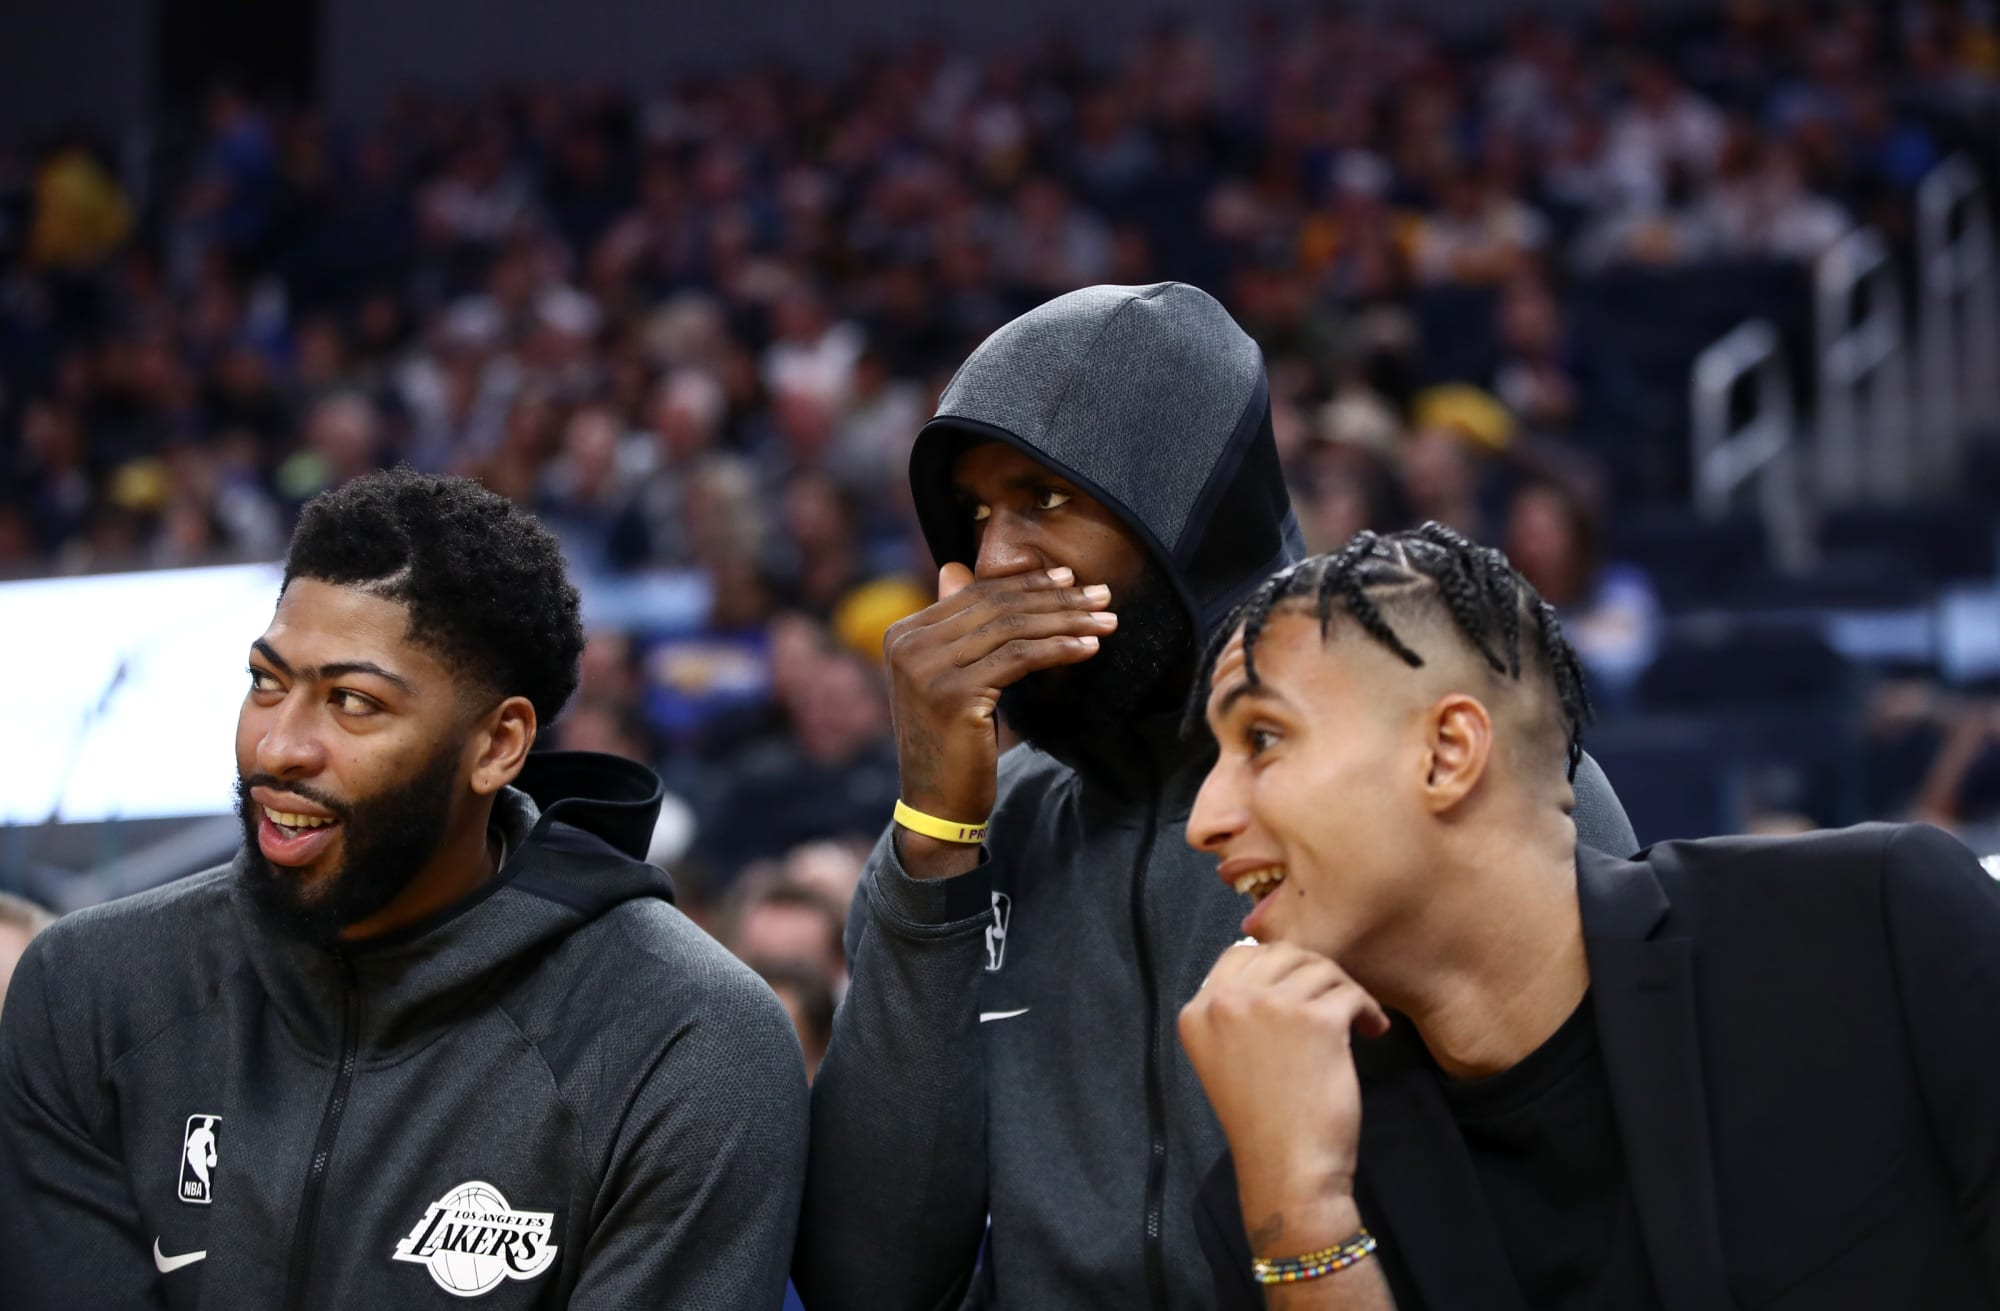 Los Angeles Lakers: 2 keys to winning the title once the season resumes